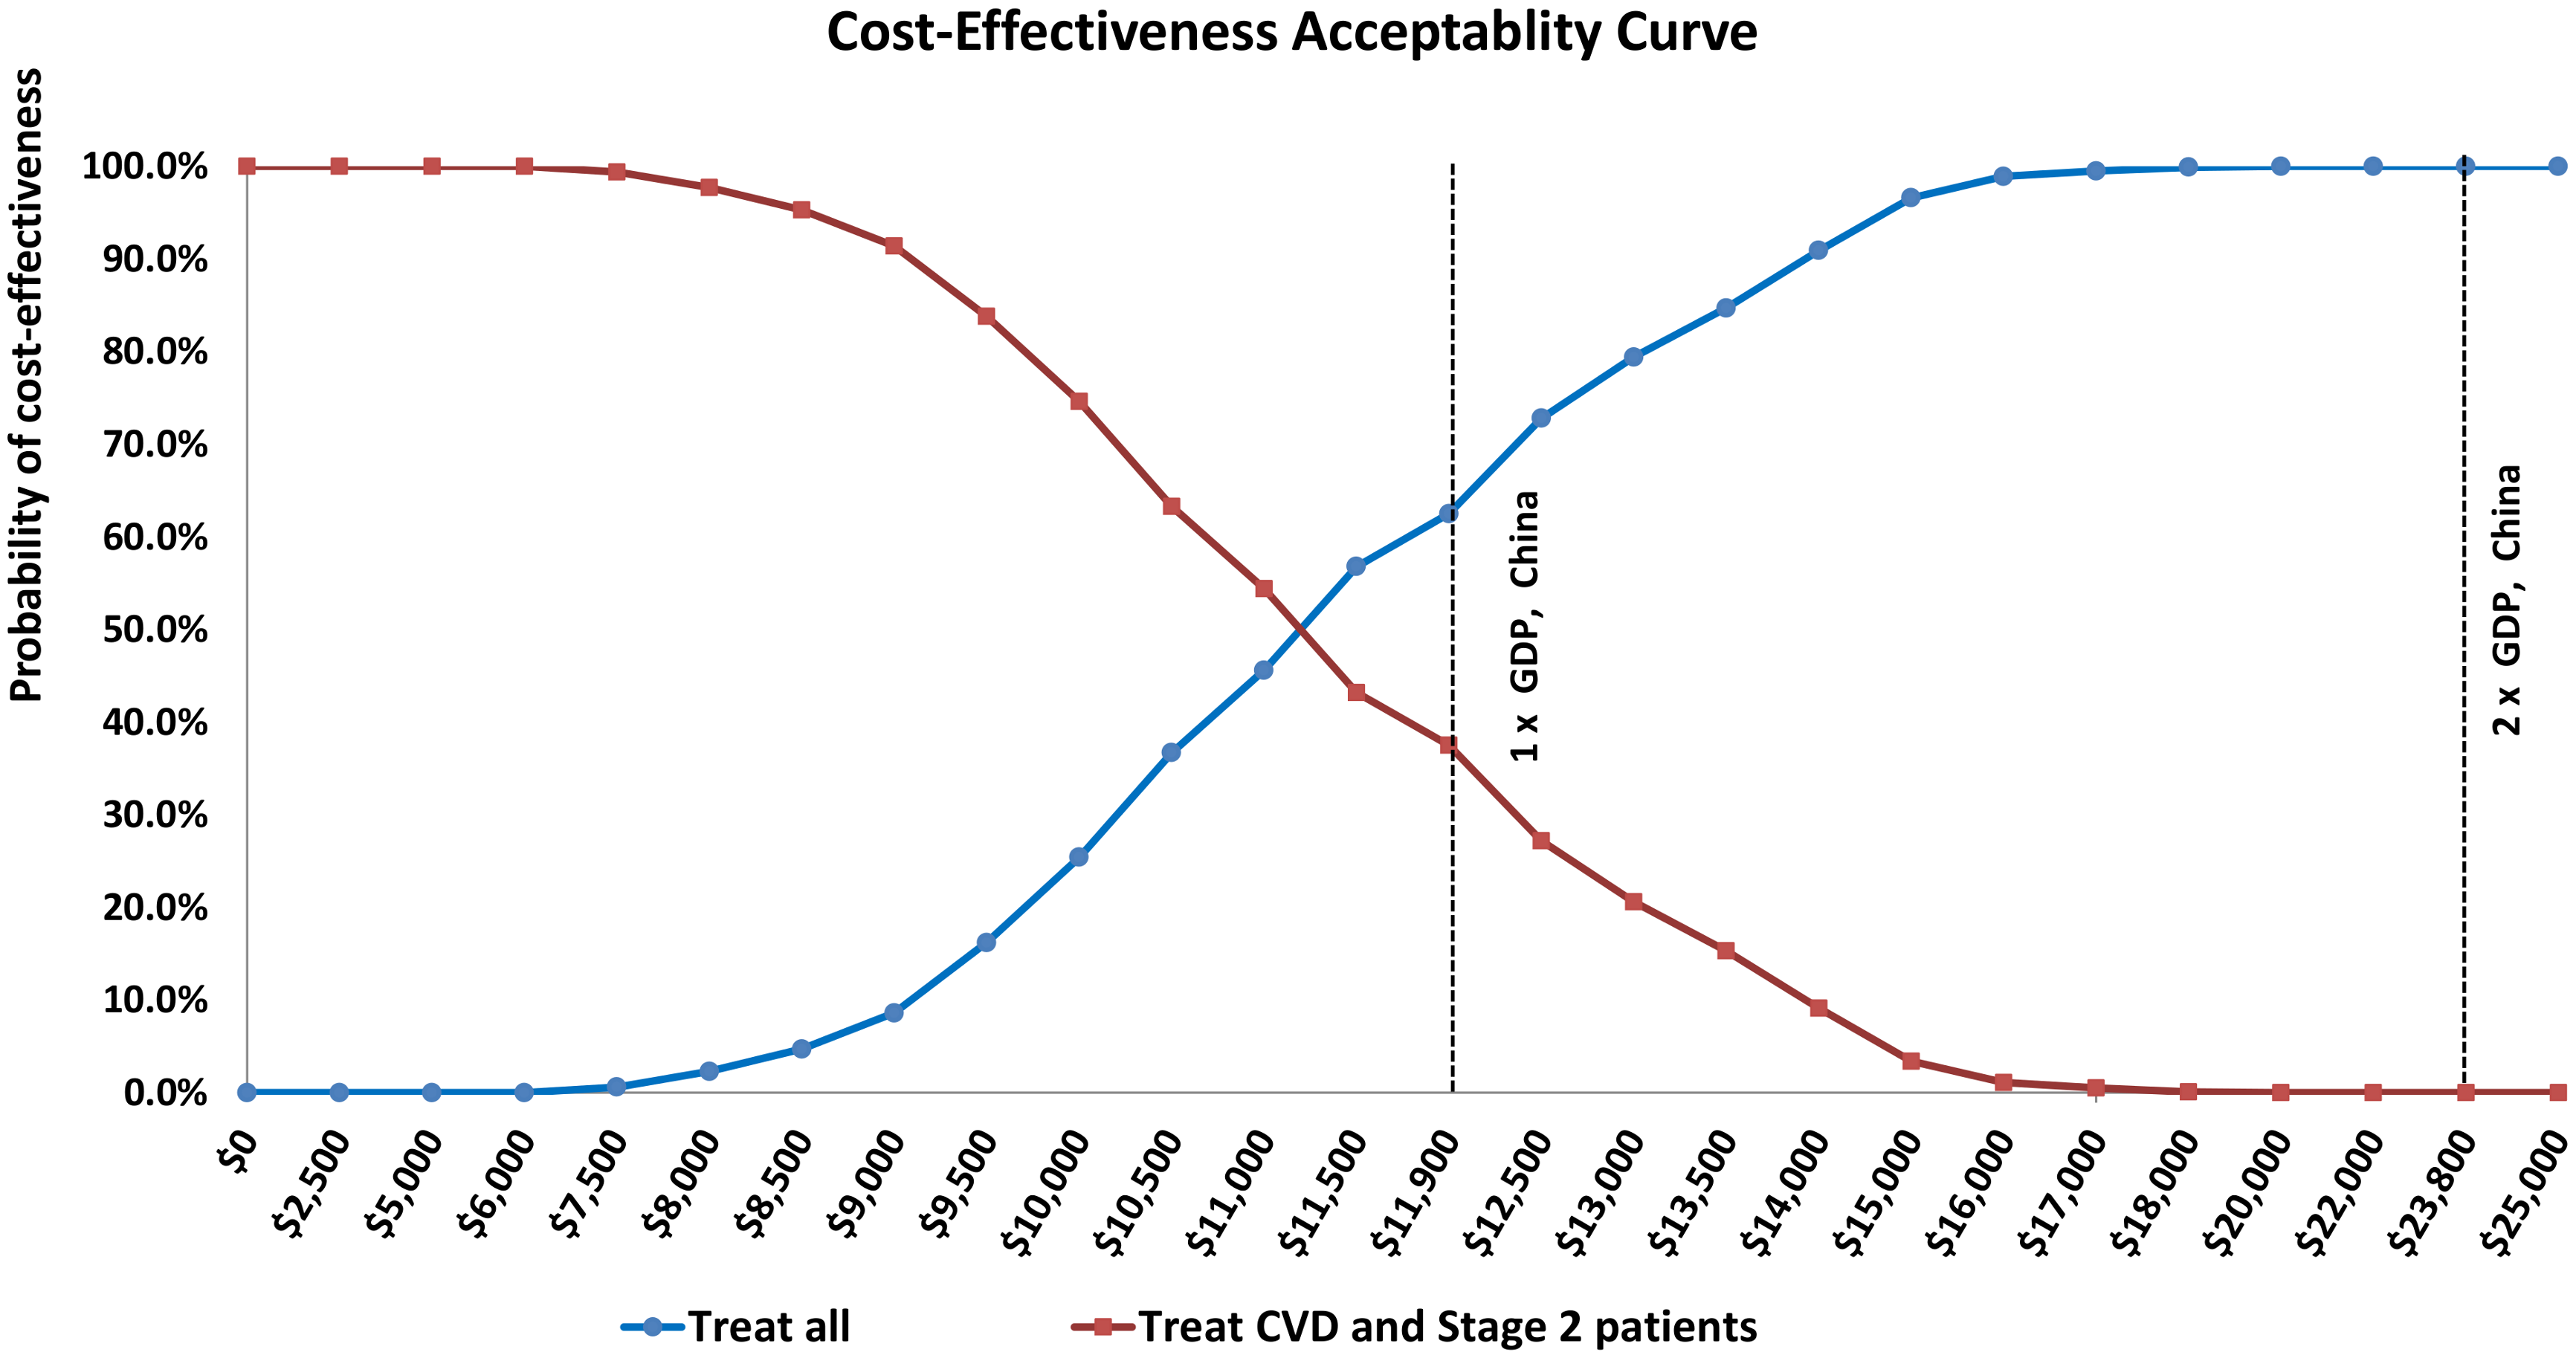 Cost-effectiveness acceptability curves comparing treating all untreated hypertensive adults (blue) with treating only untreated CVD patients and adults with stage 2 hypertension but without CVD (red).